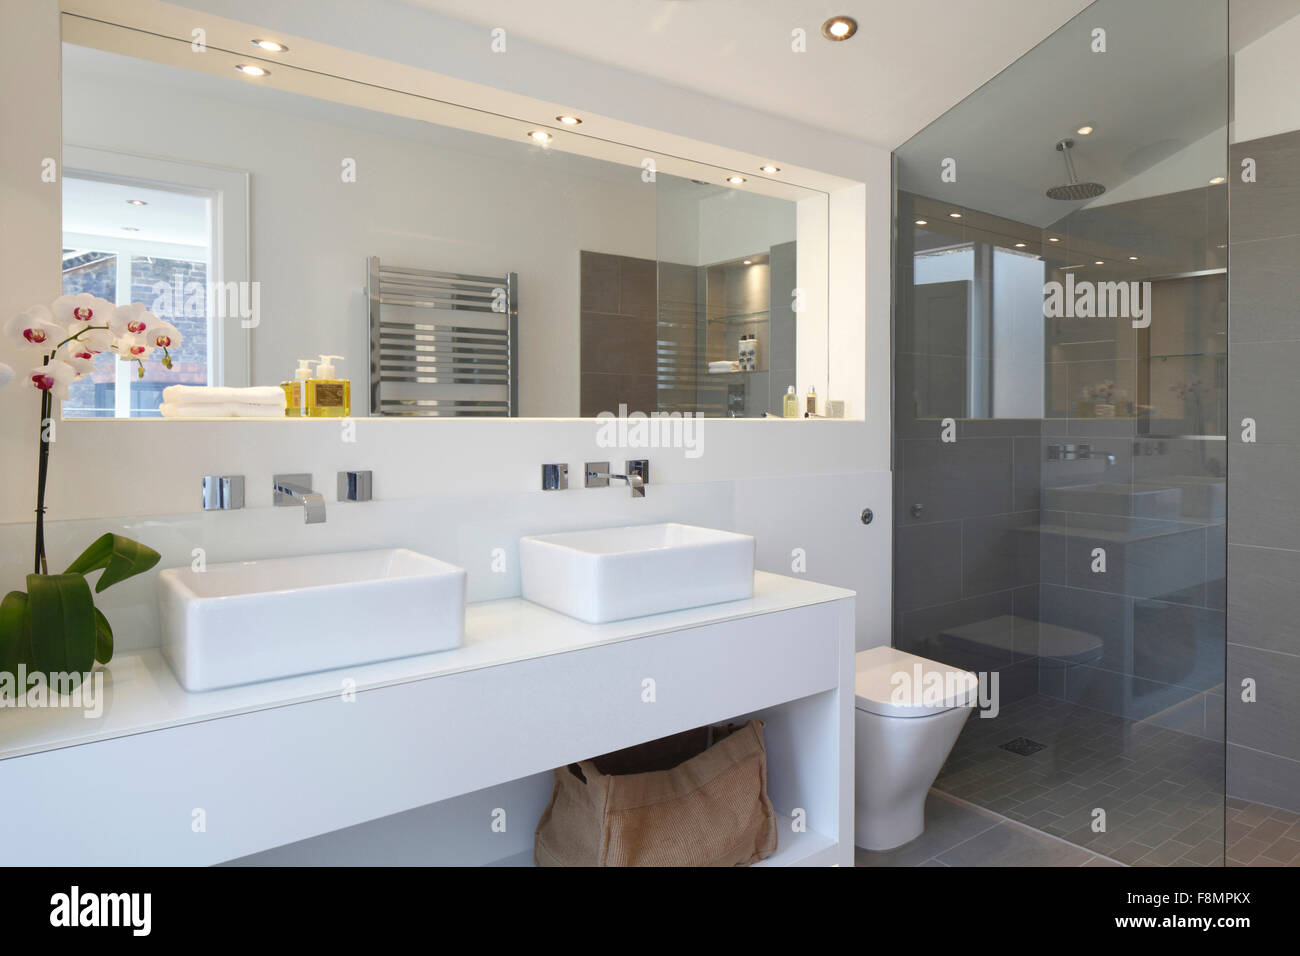 Bathroom with twin white basins over white vanity unit and grey tiled shower enclosure